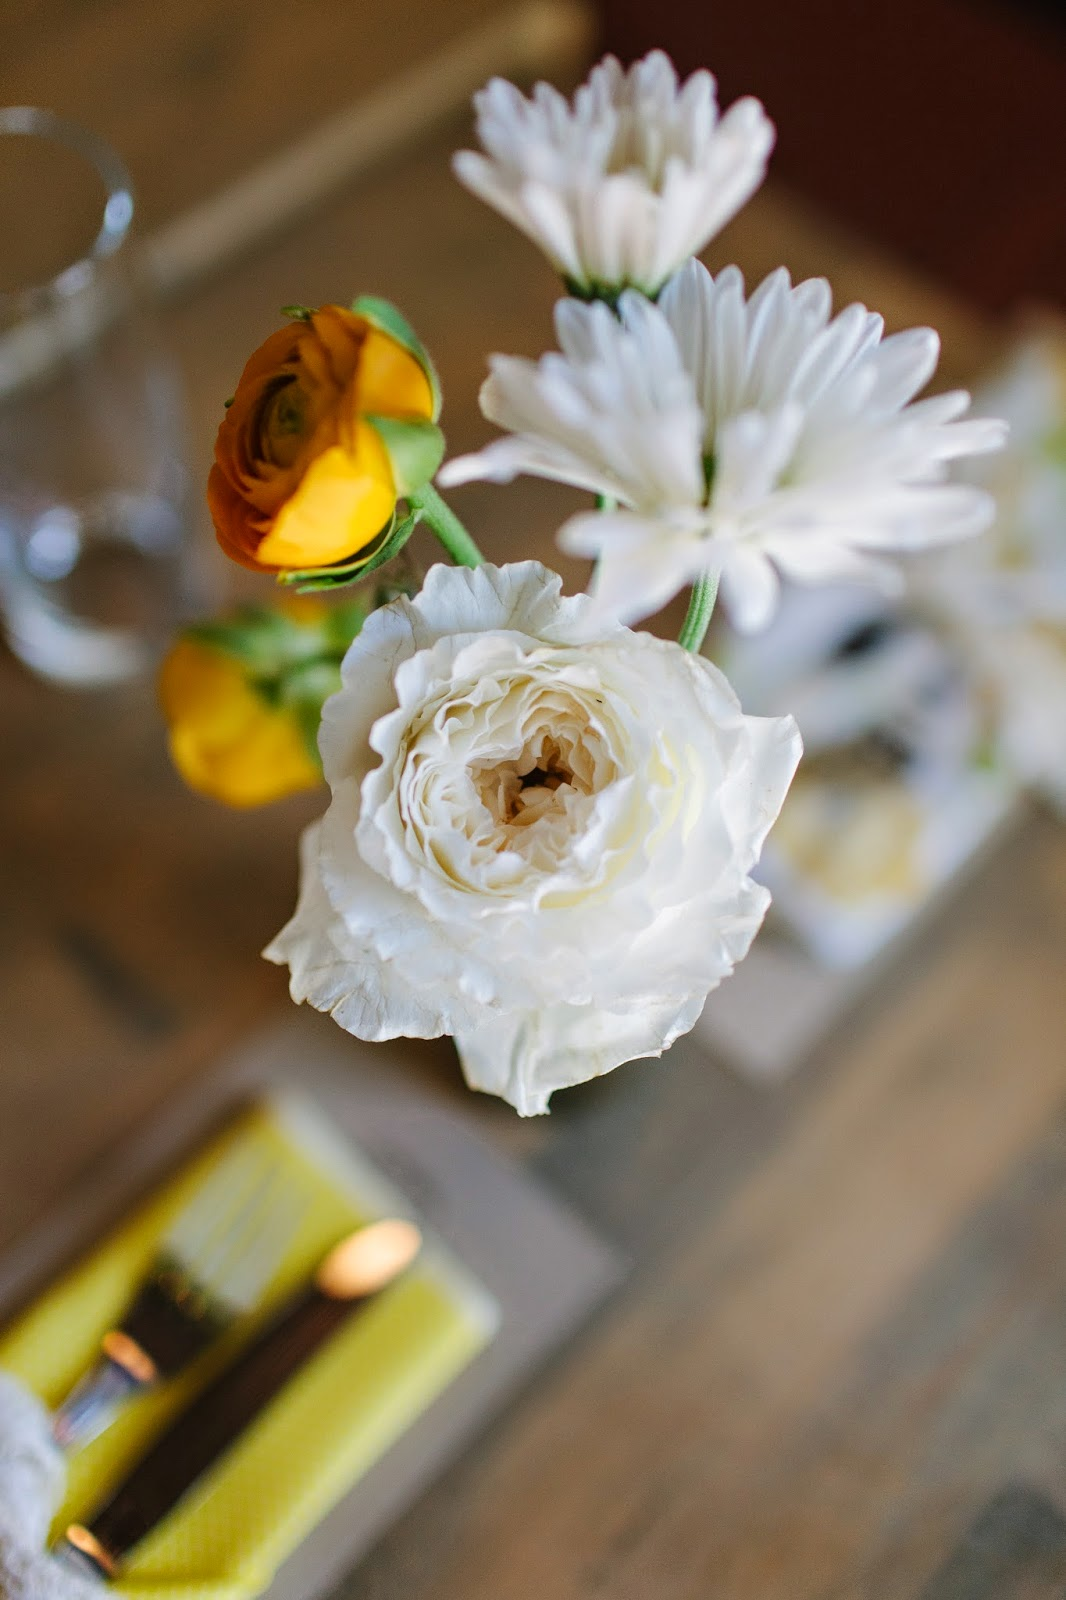 yellow ranunculus and white patience garden rose spring wedding dinner centerpiece in brooklyn, new york